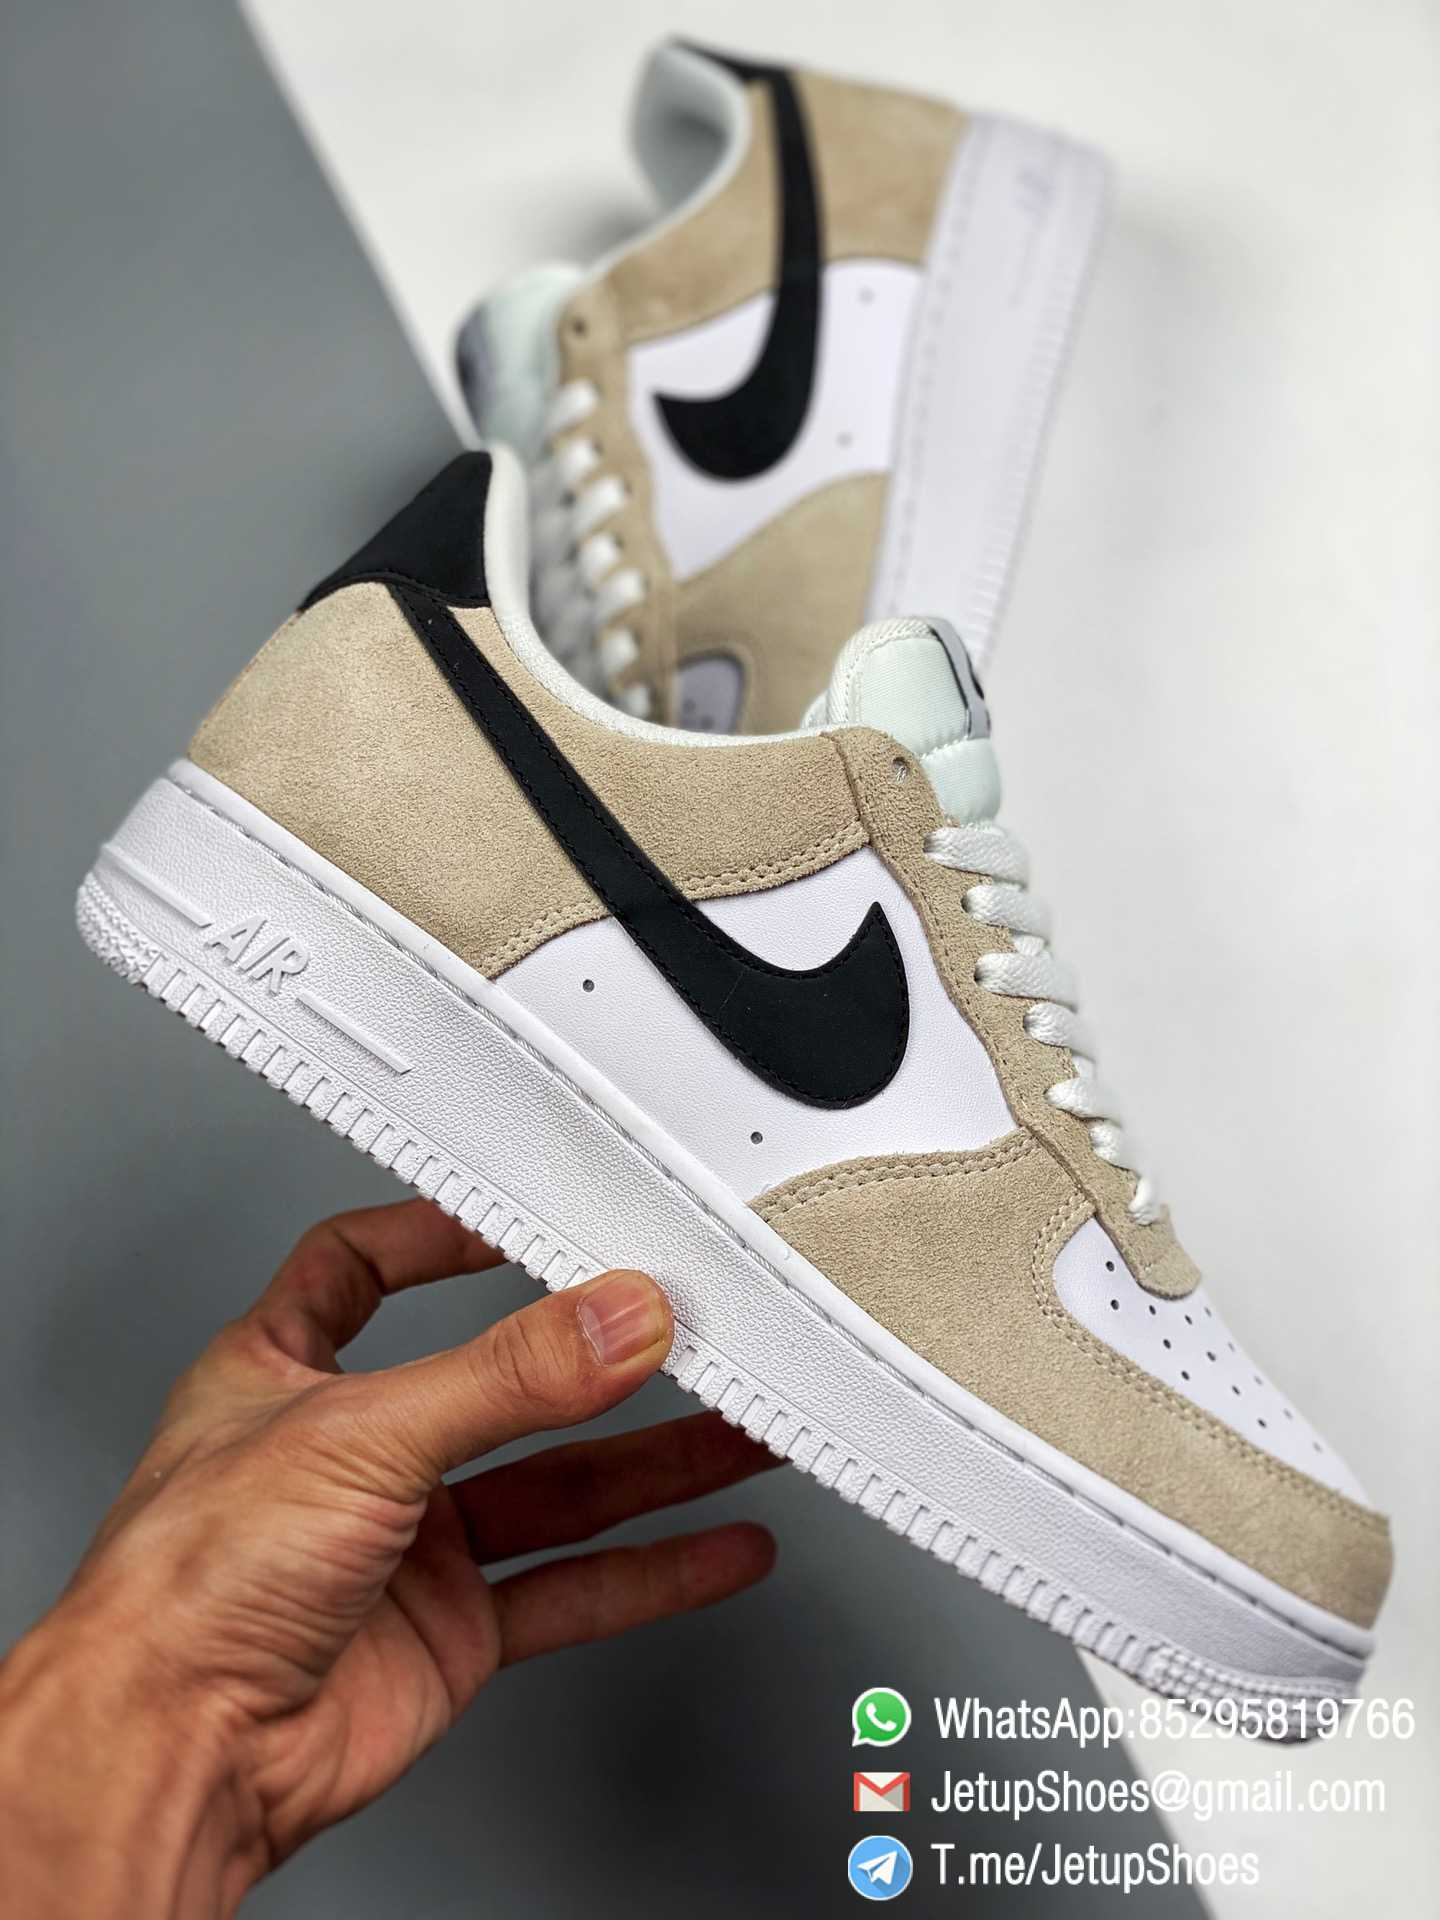 RepSneakers Wmns Air Force 1 Low Pixel Desert Sand Mixed Leather and Cream Suede Base Best Replica Sneakers 0